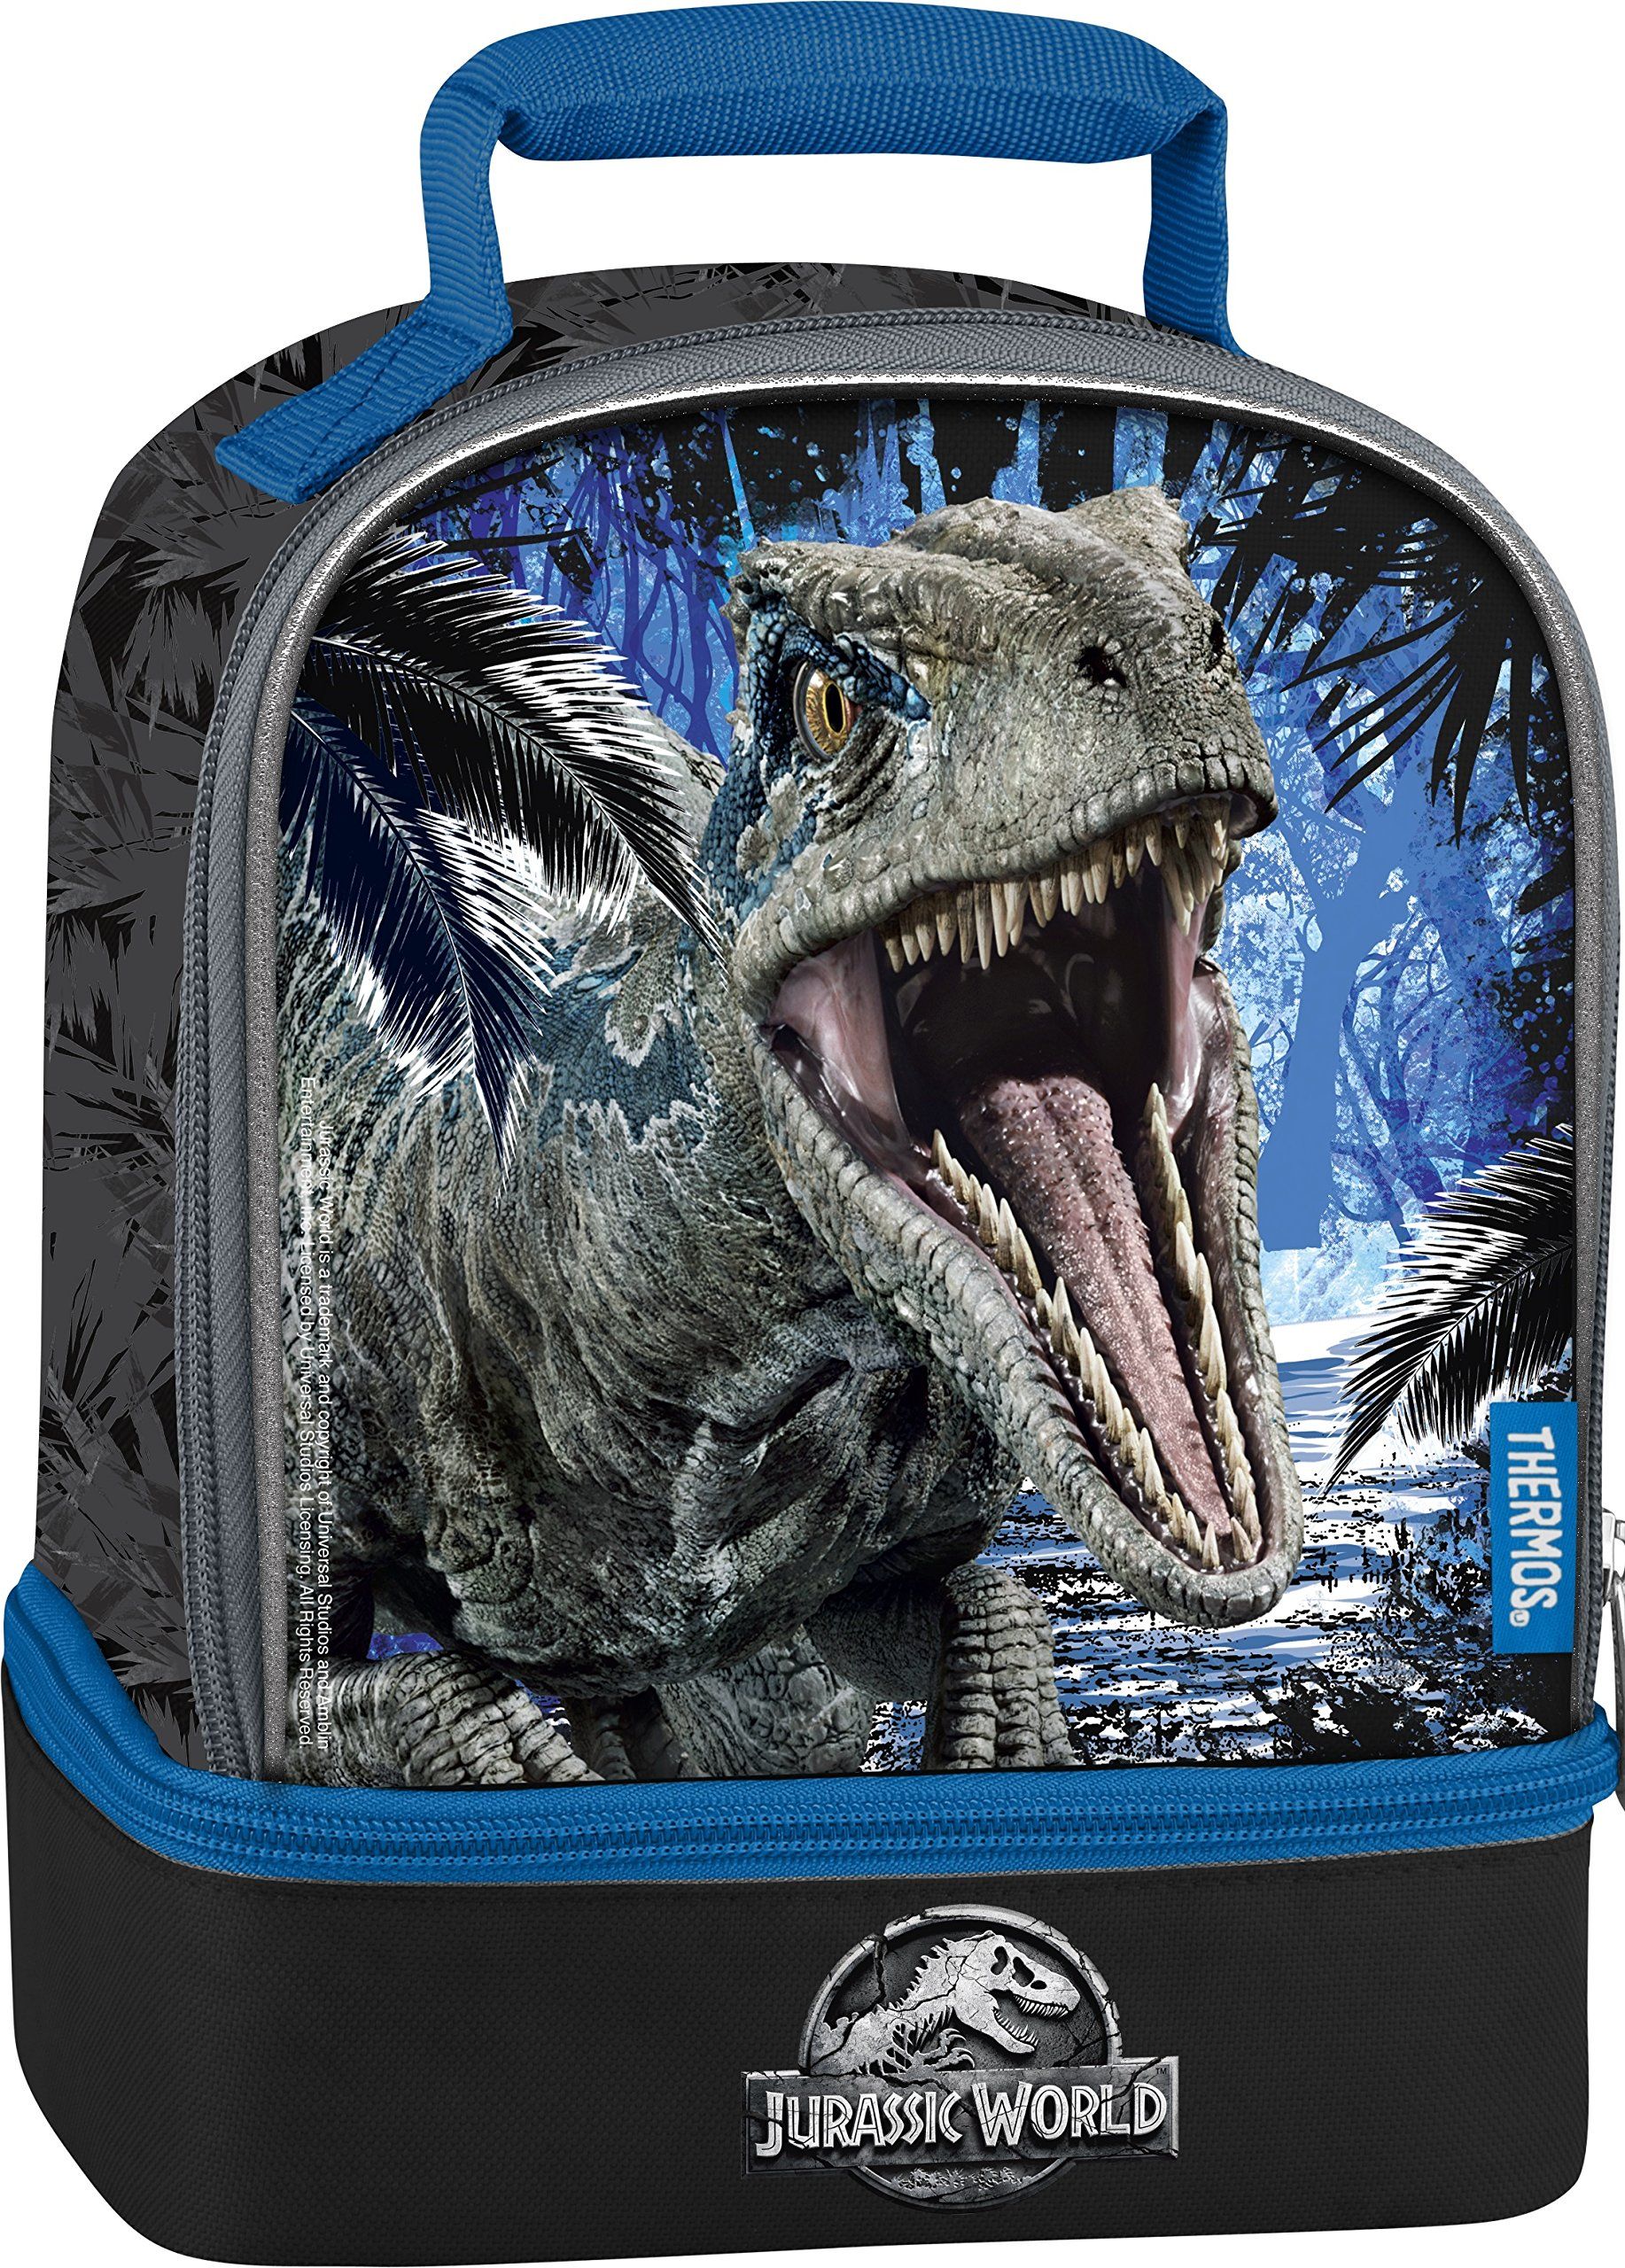 Thermos Licensed Lunch Jurassic World